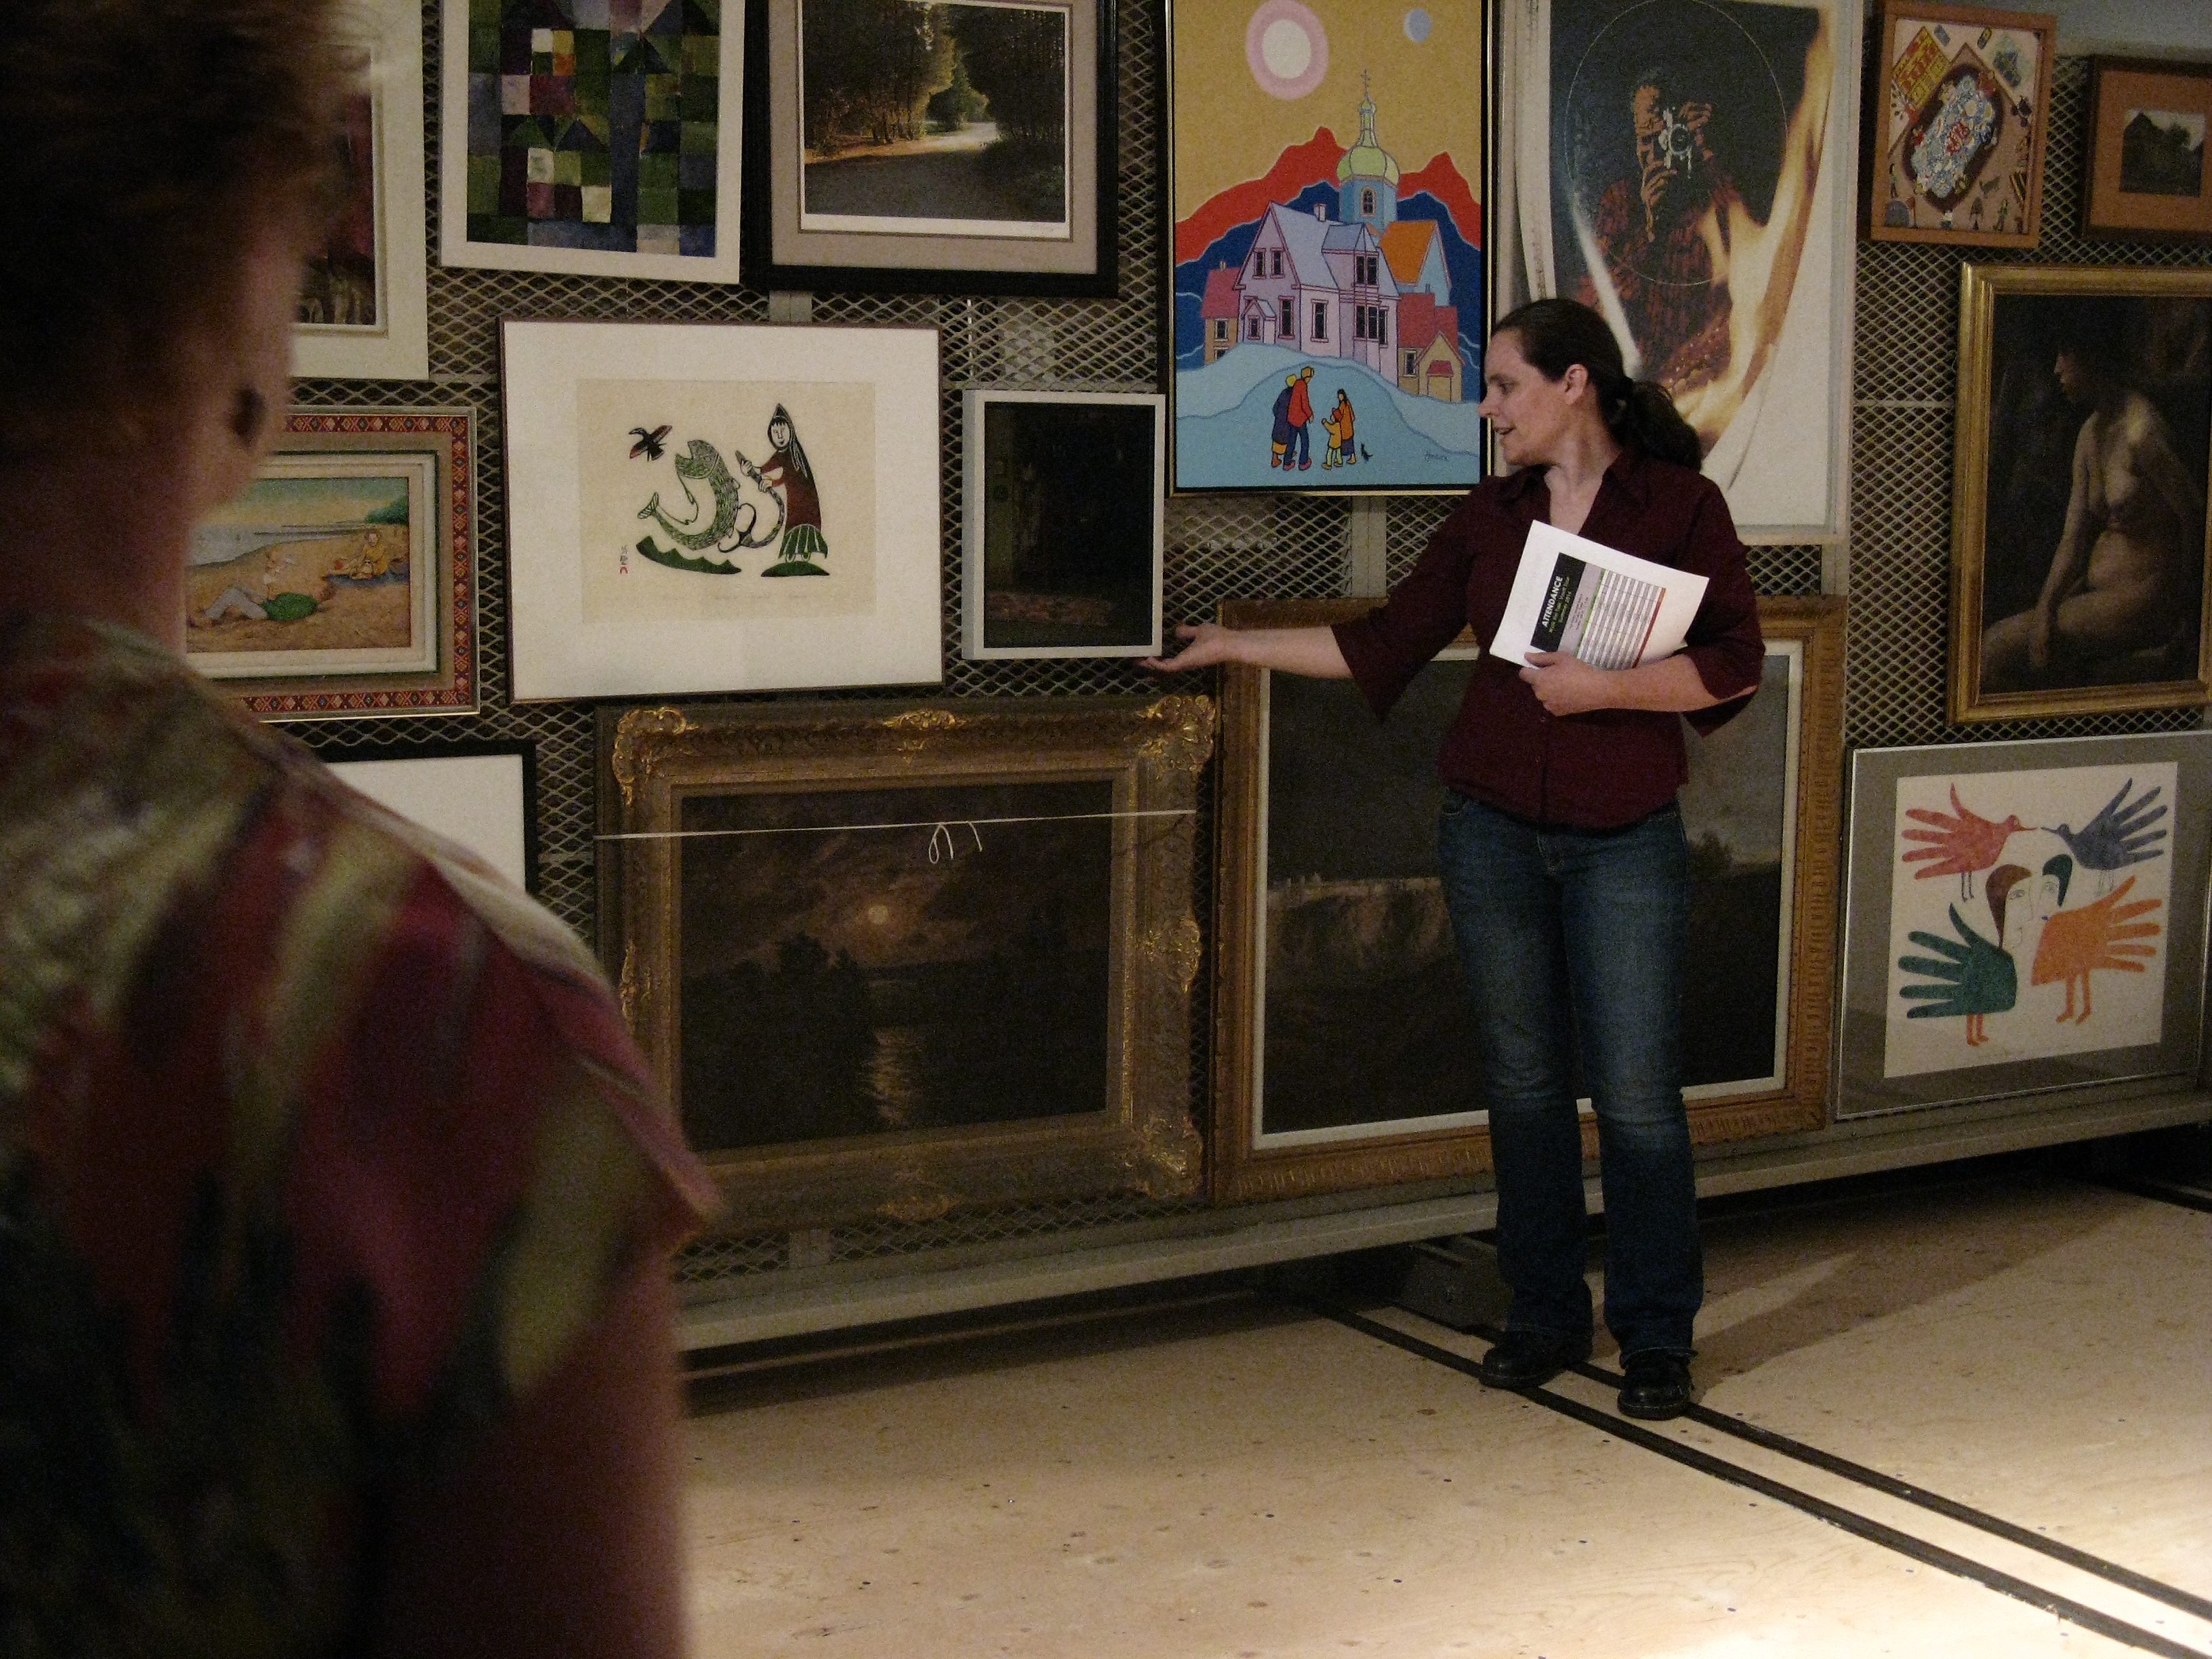 Jennifer Bullock stands before a painting rack in the KWAG vault, gesturing to one of many paintings stored on the rack